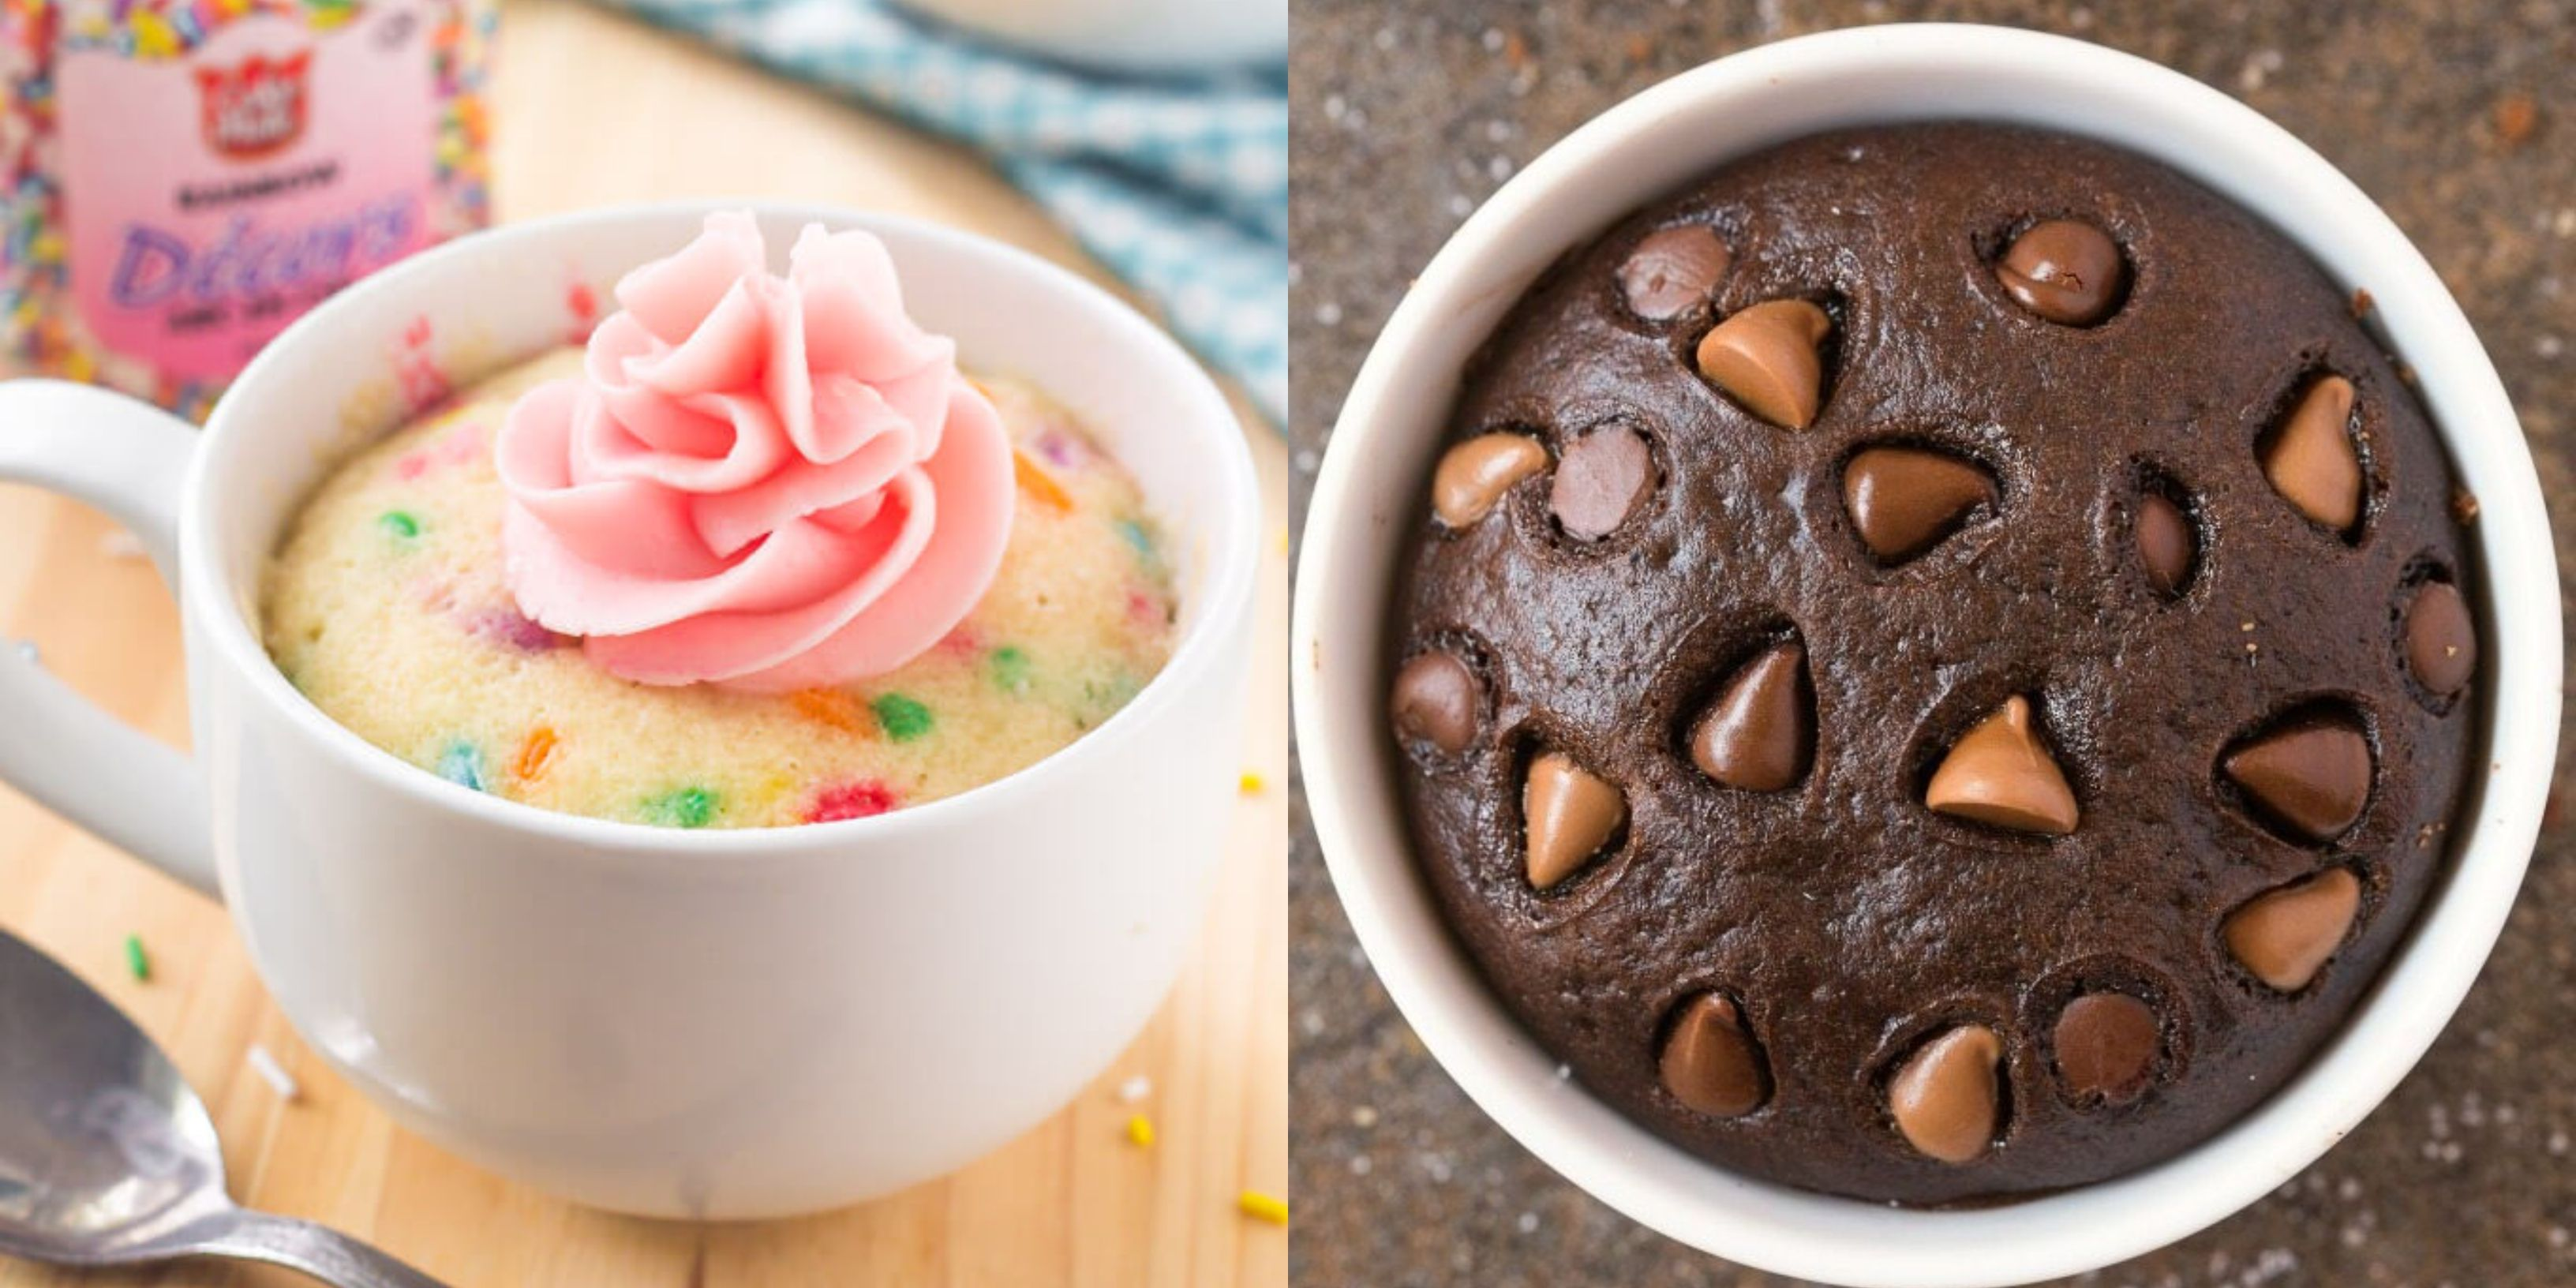 30 Mug Cakes That Will Be Your New Dessert Obsession